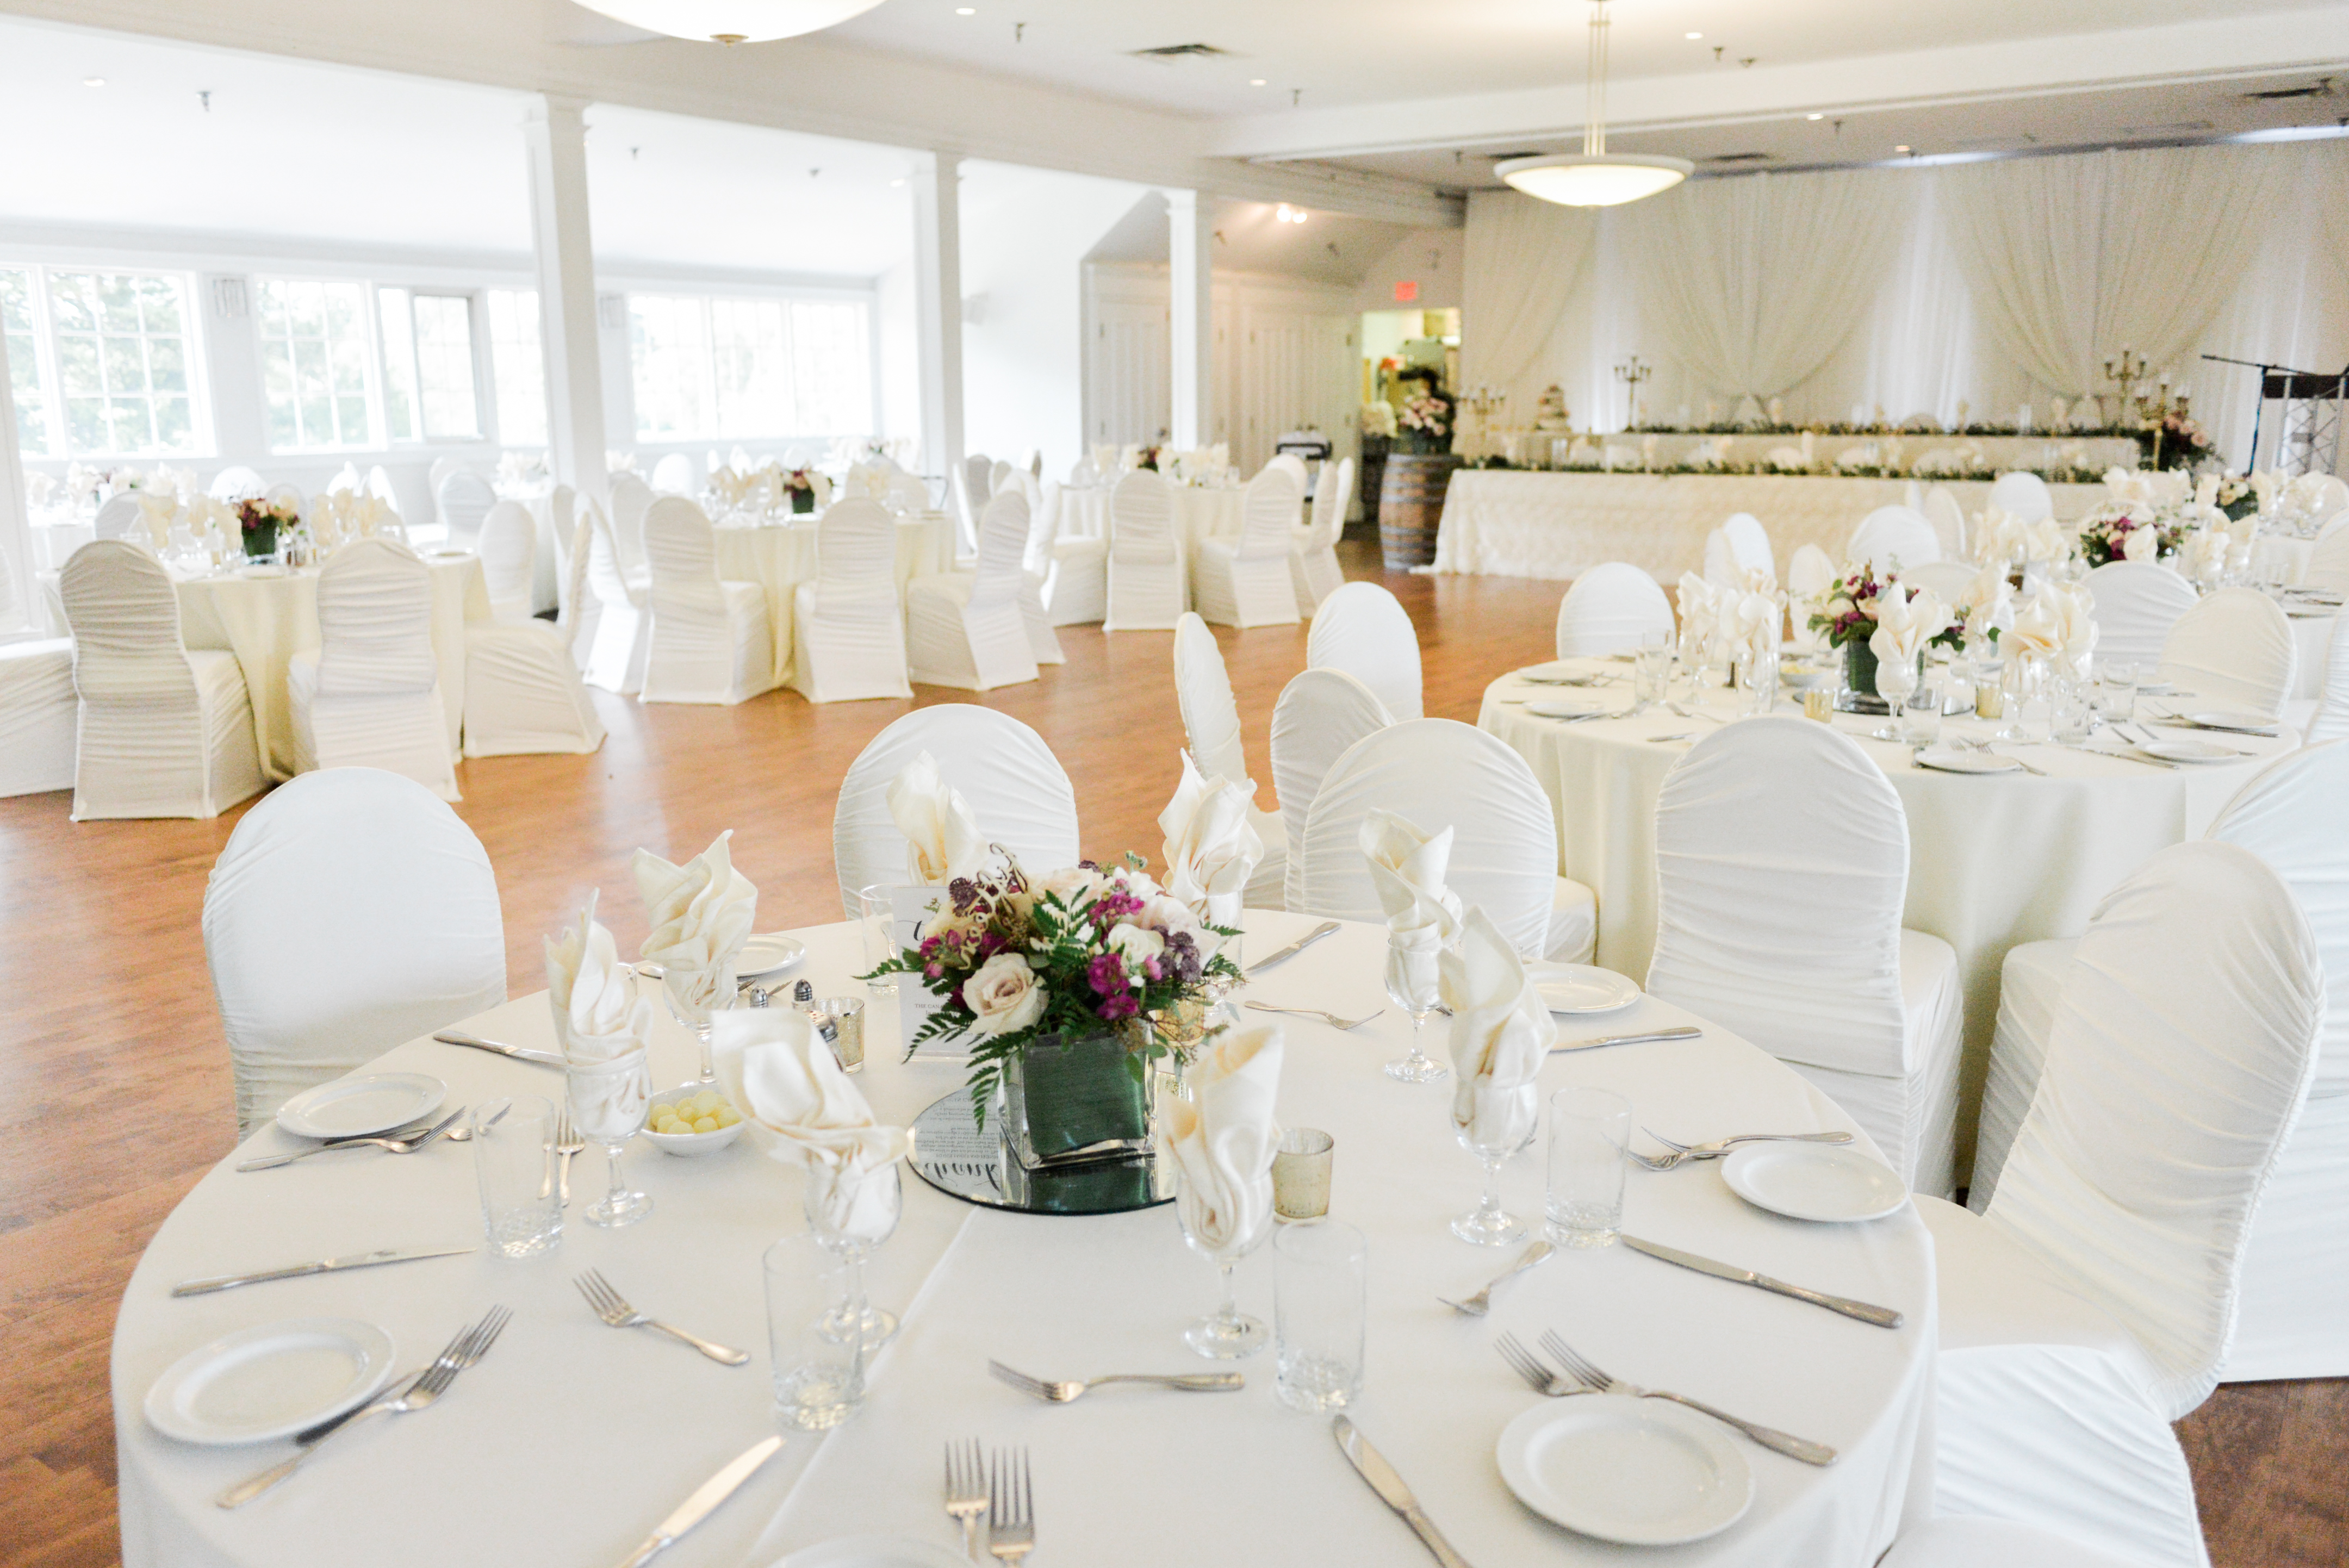 Down The Aisle Head Table Or Sweetheart Table: Ceremony & Reception Decor